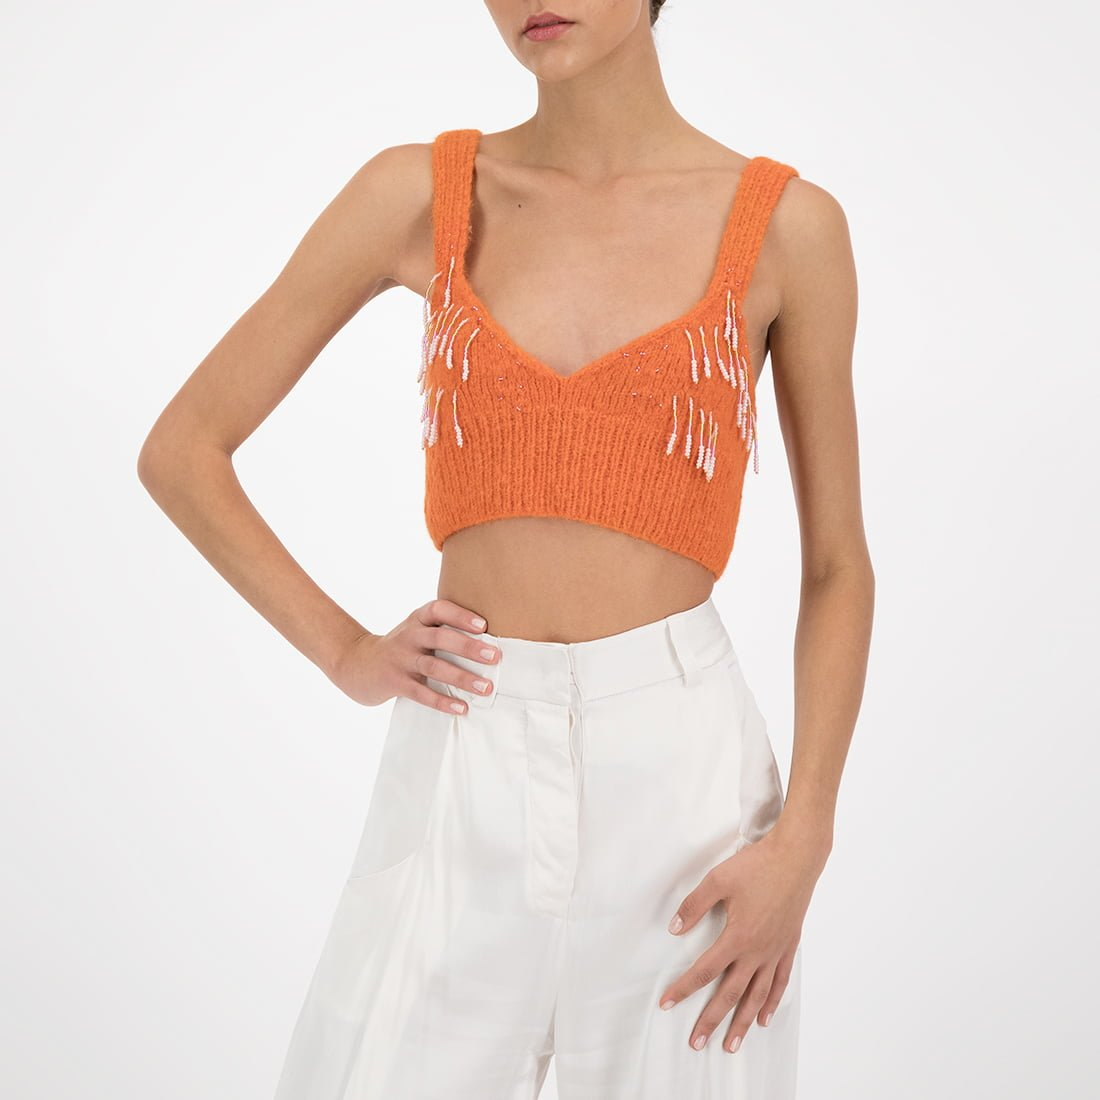 Jersey Knitted Top W/ Beads by Mozh Mozh   Soyrepublica.com